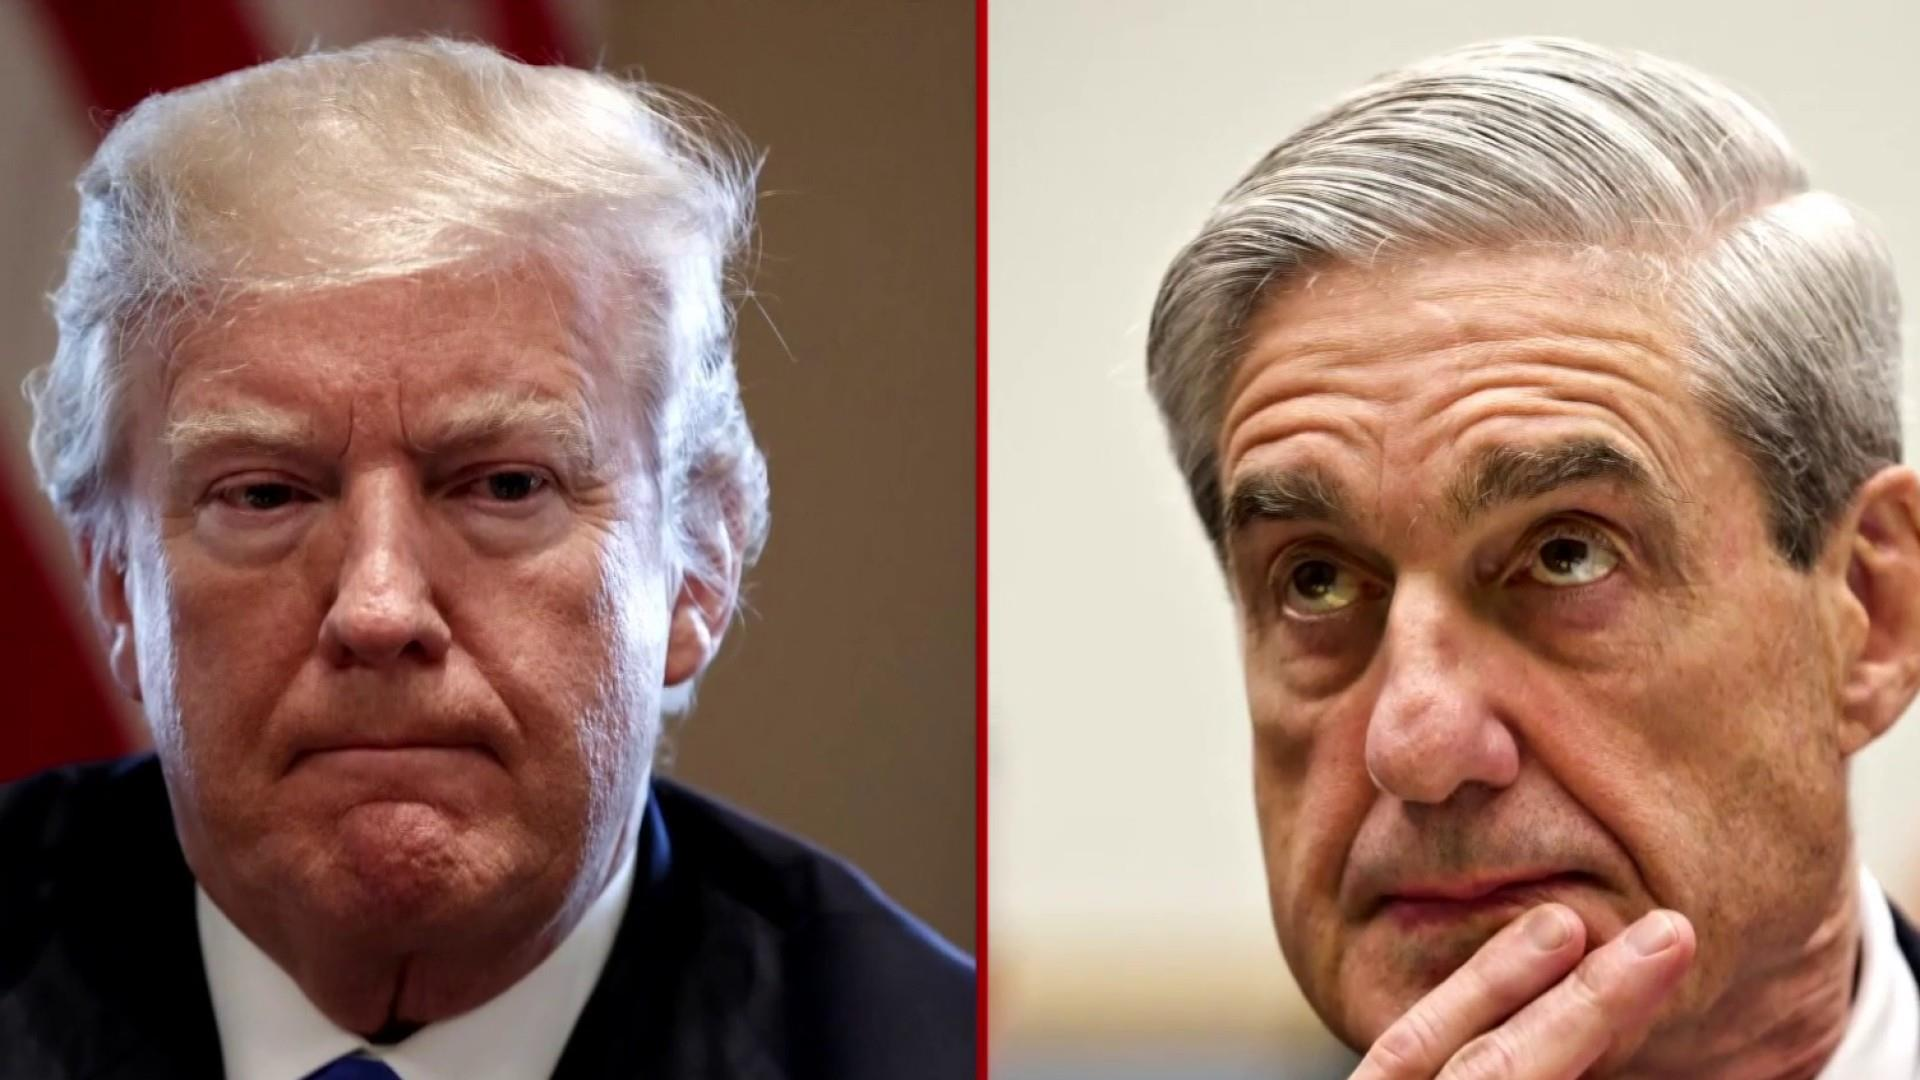 Mueller clearly on Trump's mind